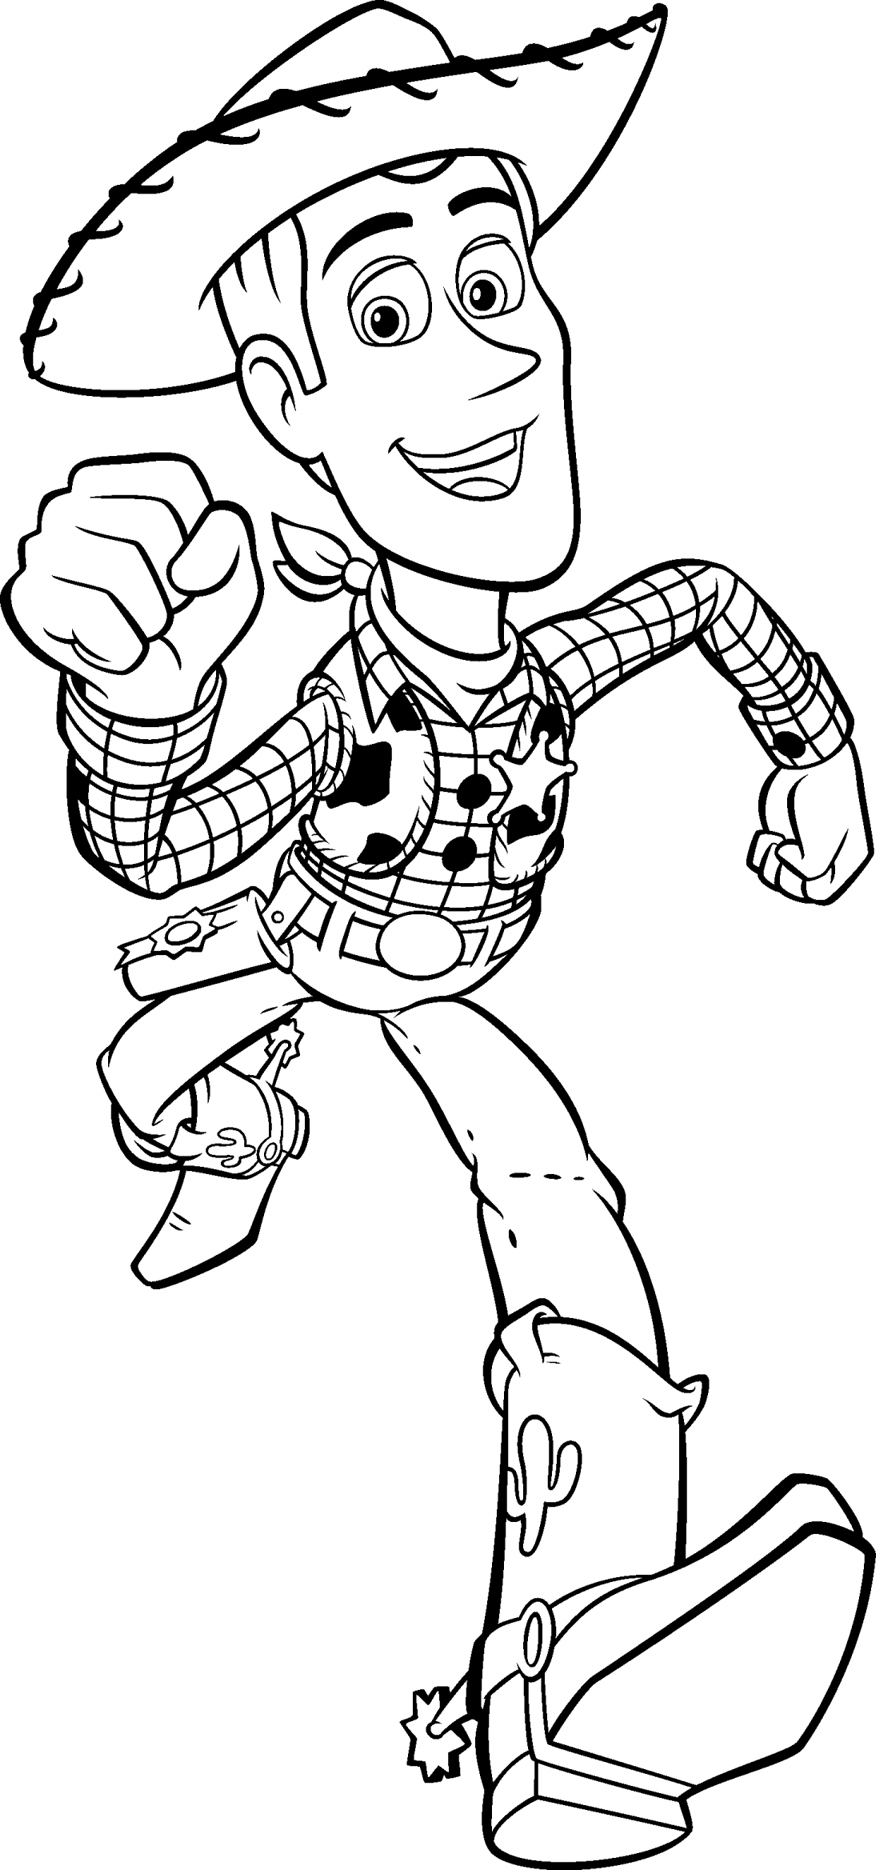 childrens disney coloring pages - photo#22